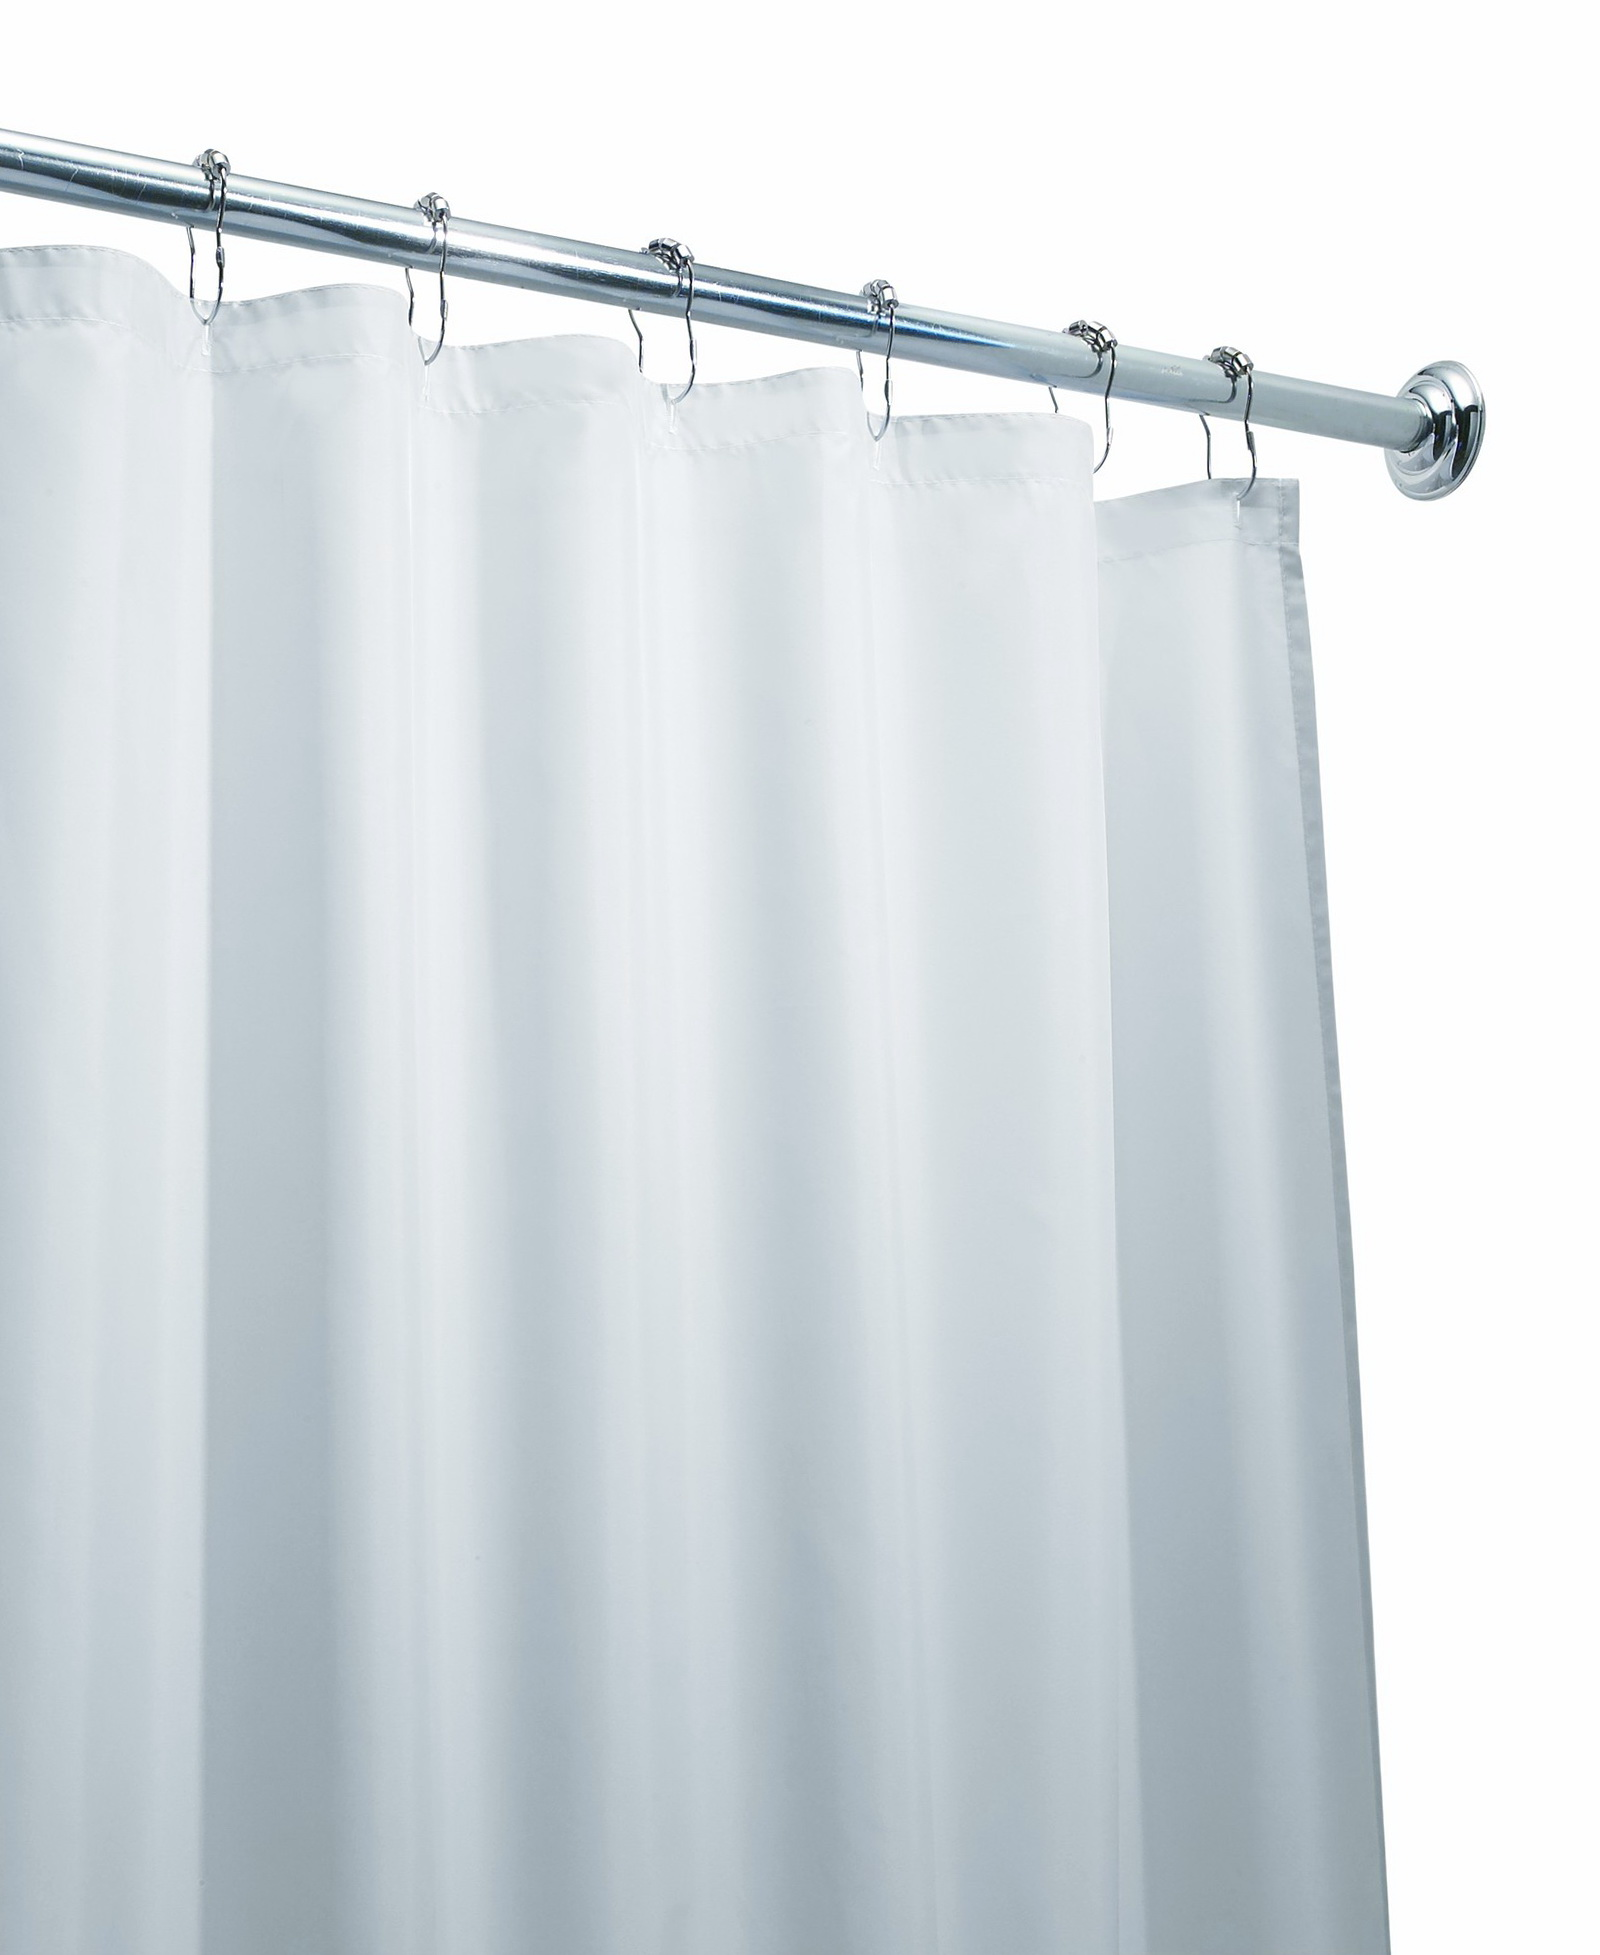 Commercial Shower Curtains Extra Long